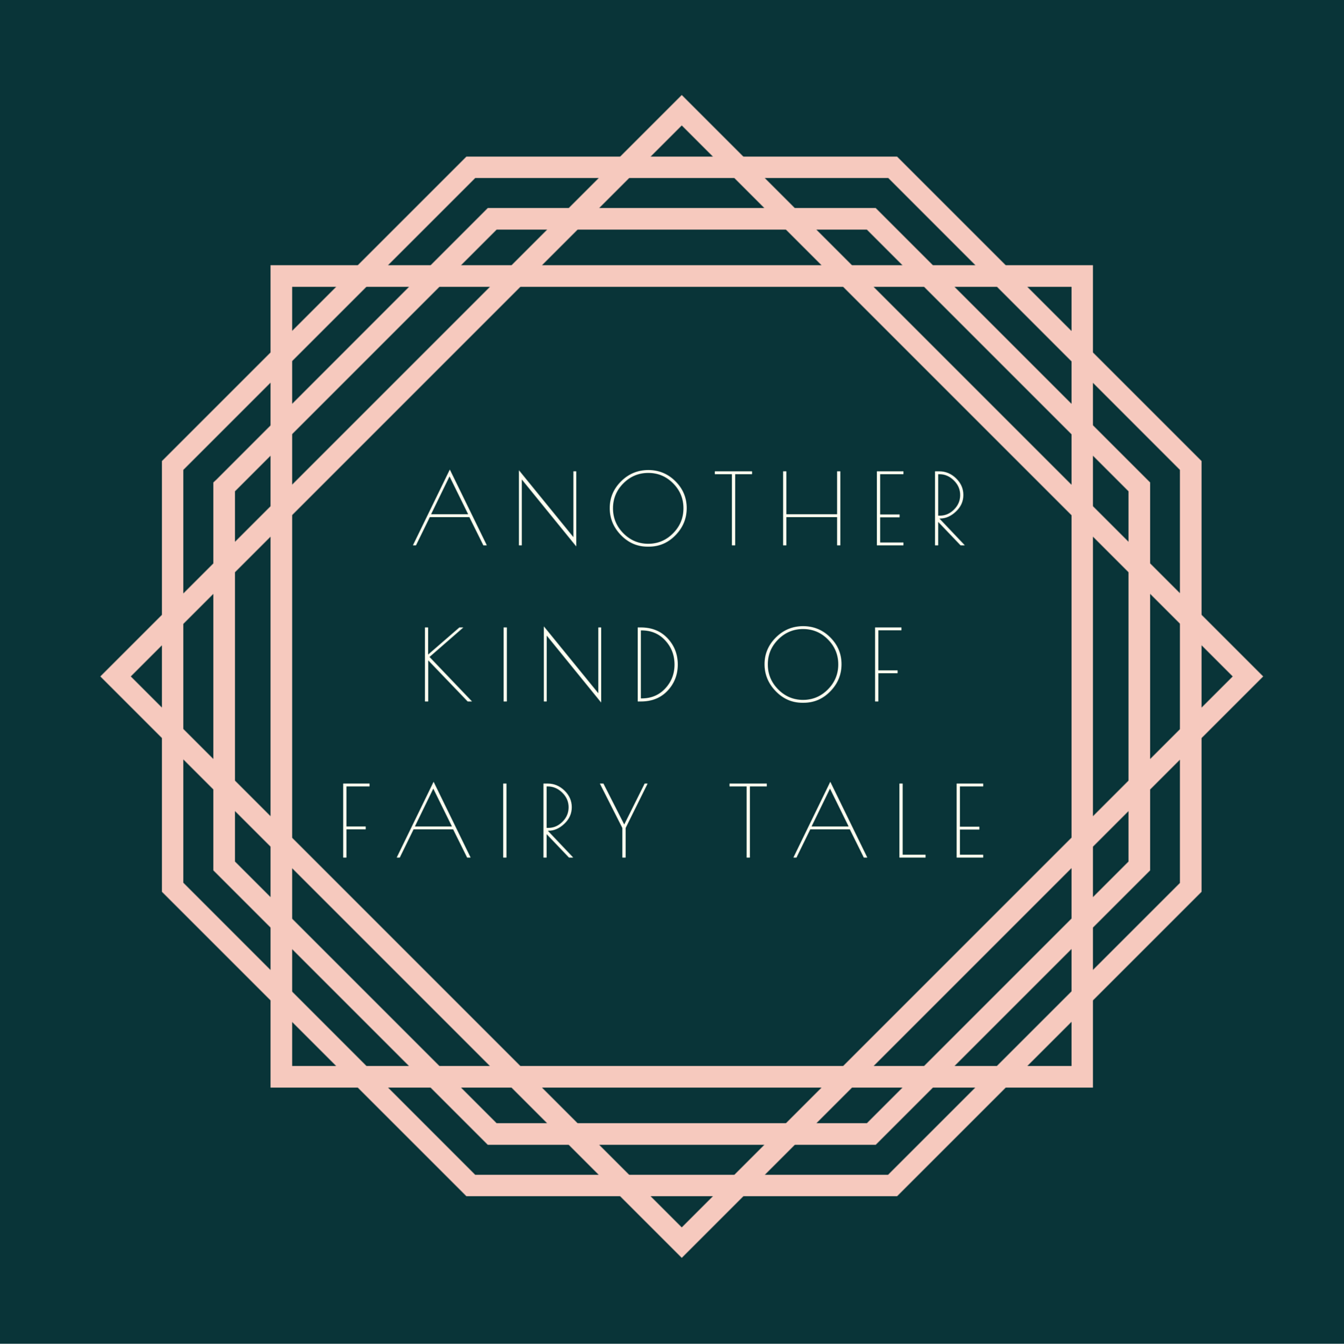 Another Kind of Fairy Tale EP